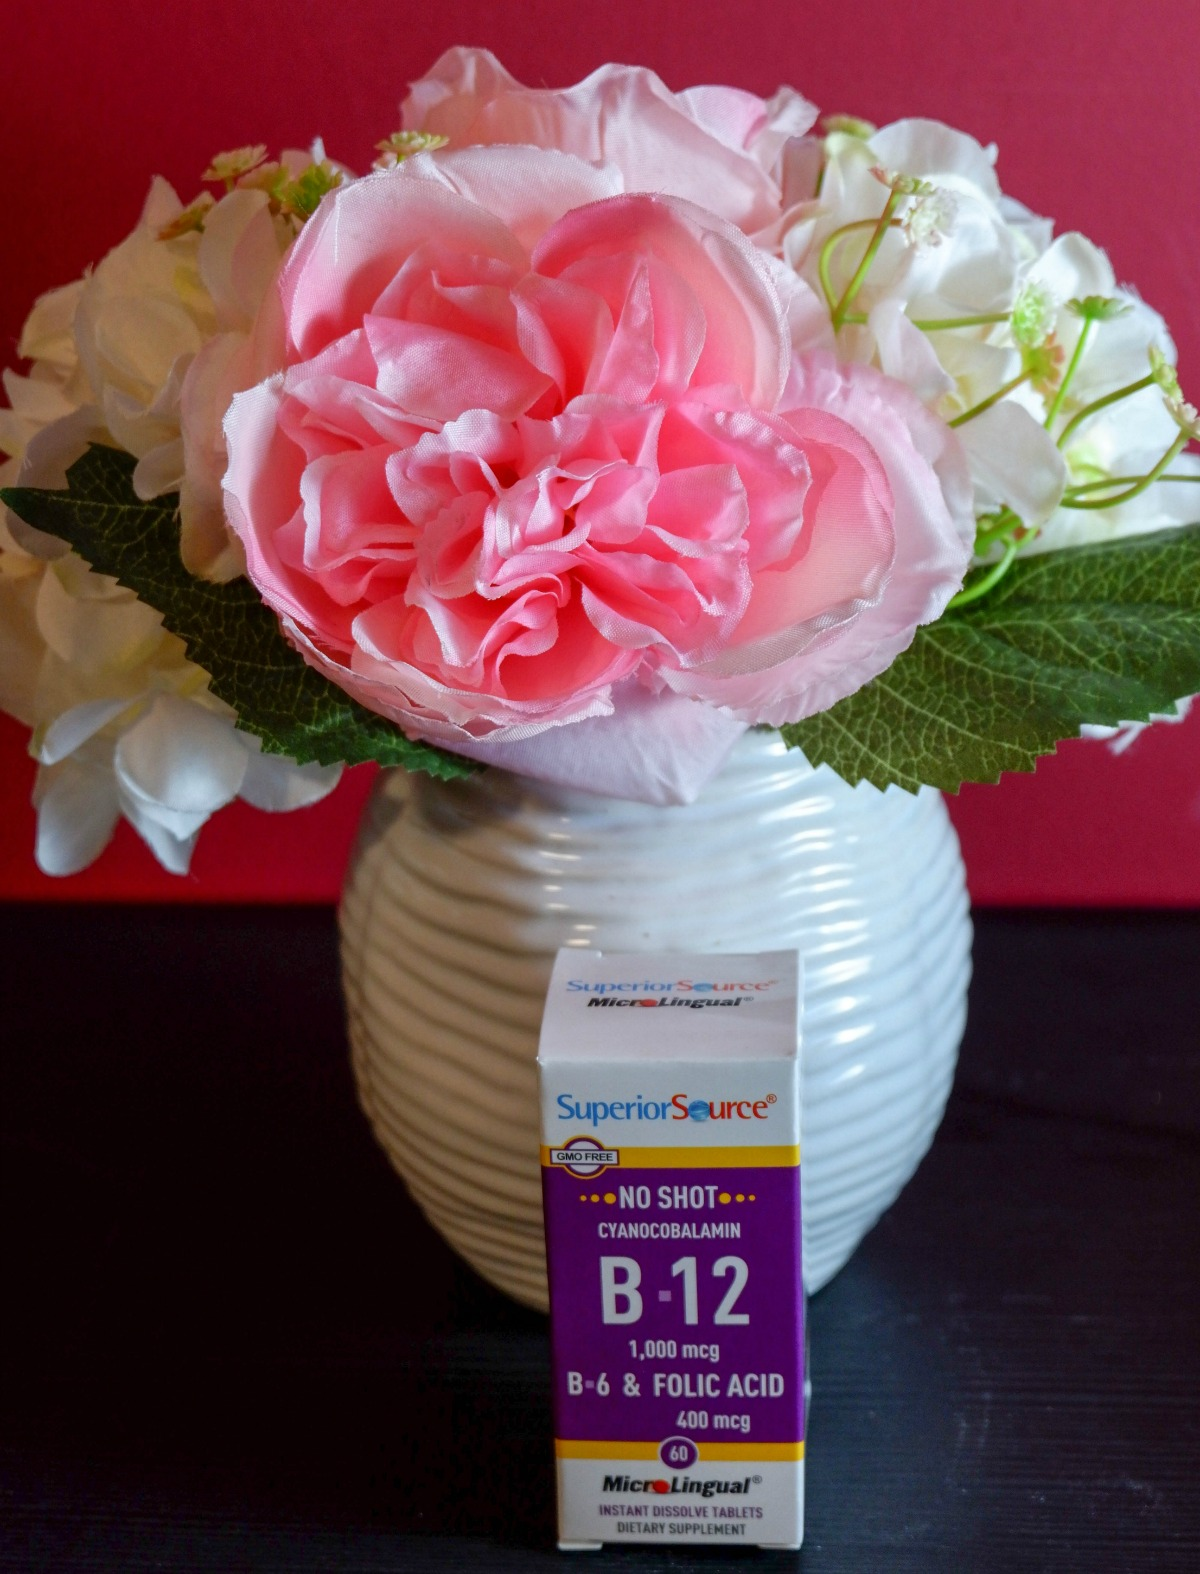 Superior Source Vitamins B-12